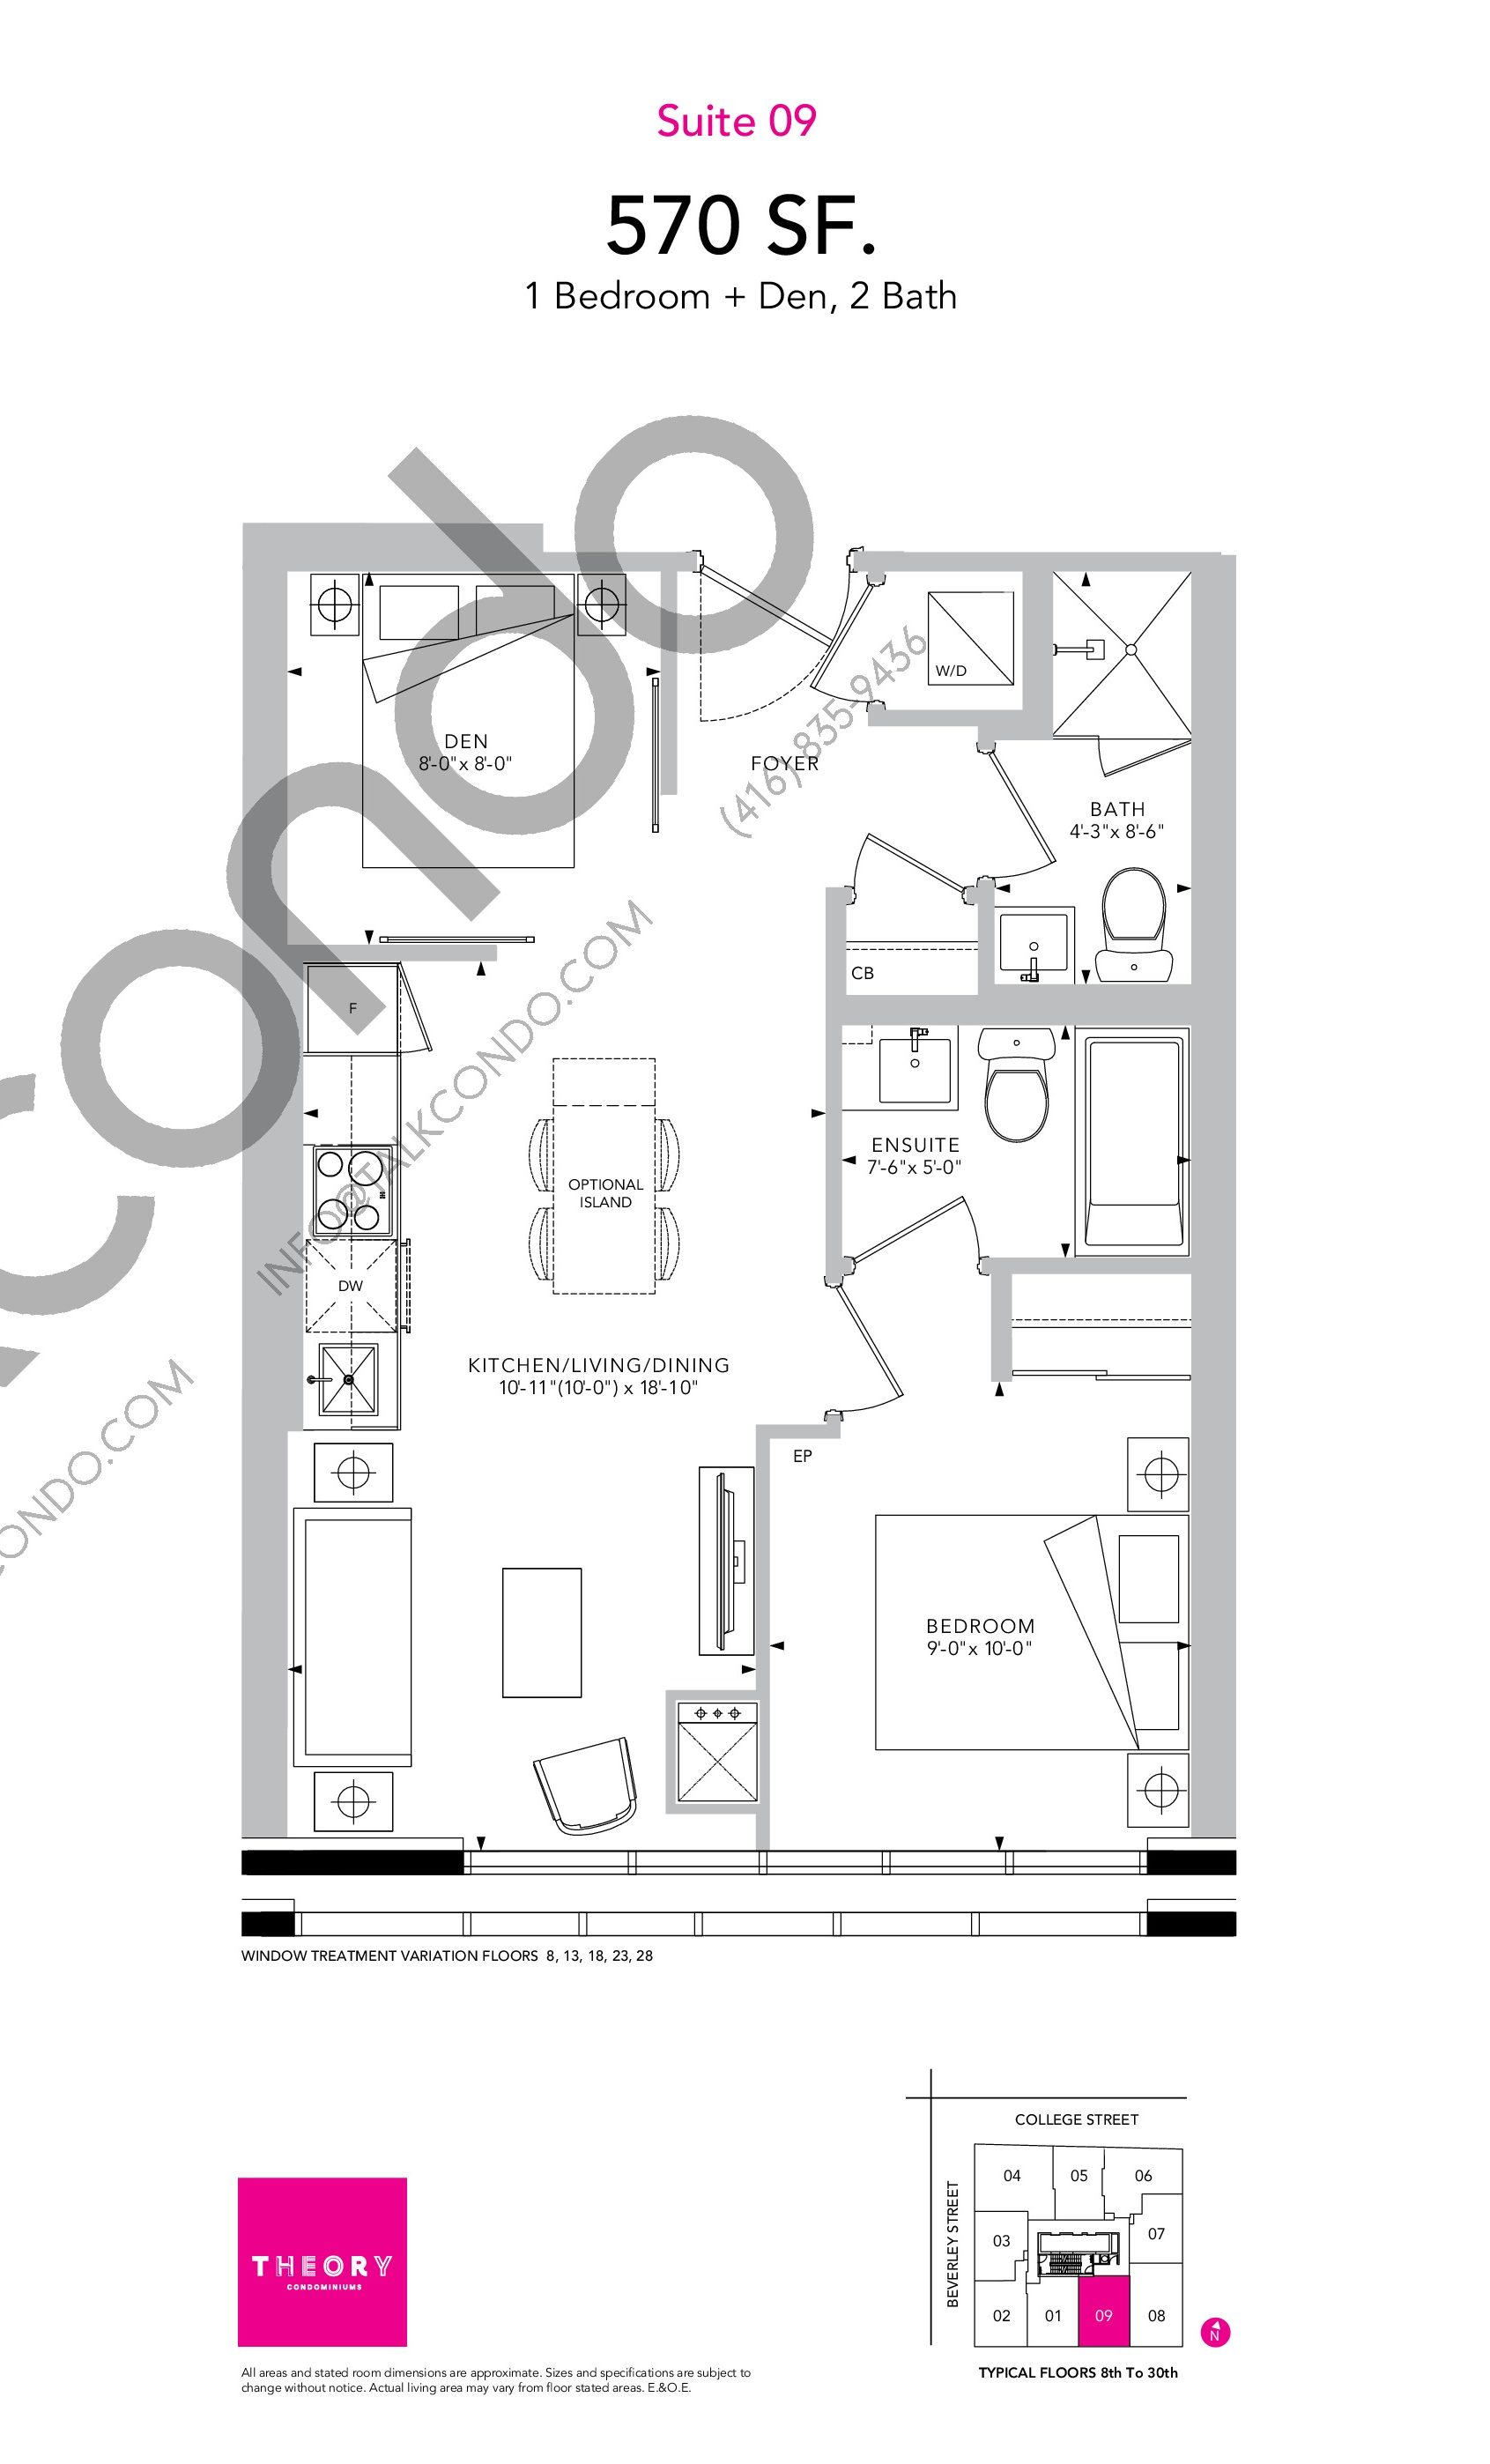 Suite 09 Floor Plan at Theory Condos - 570 sq.ft